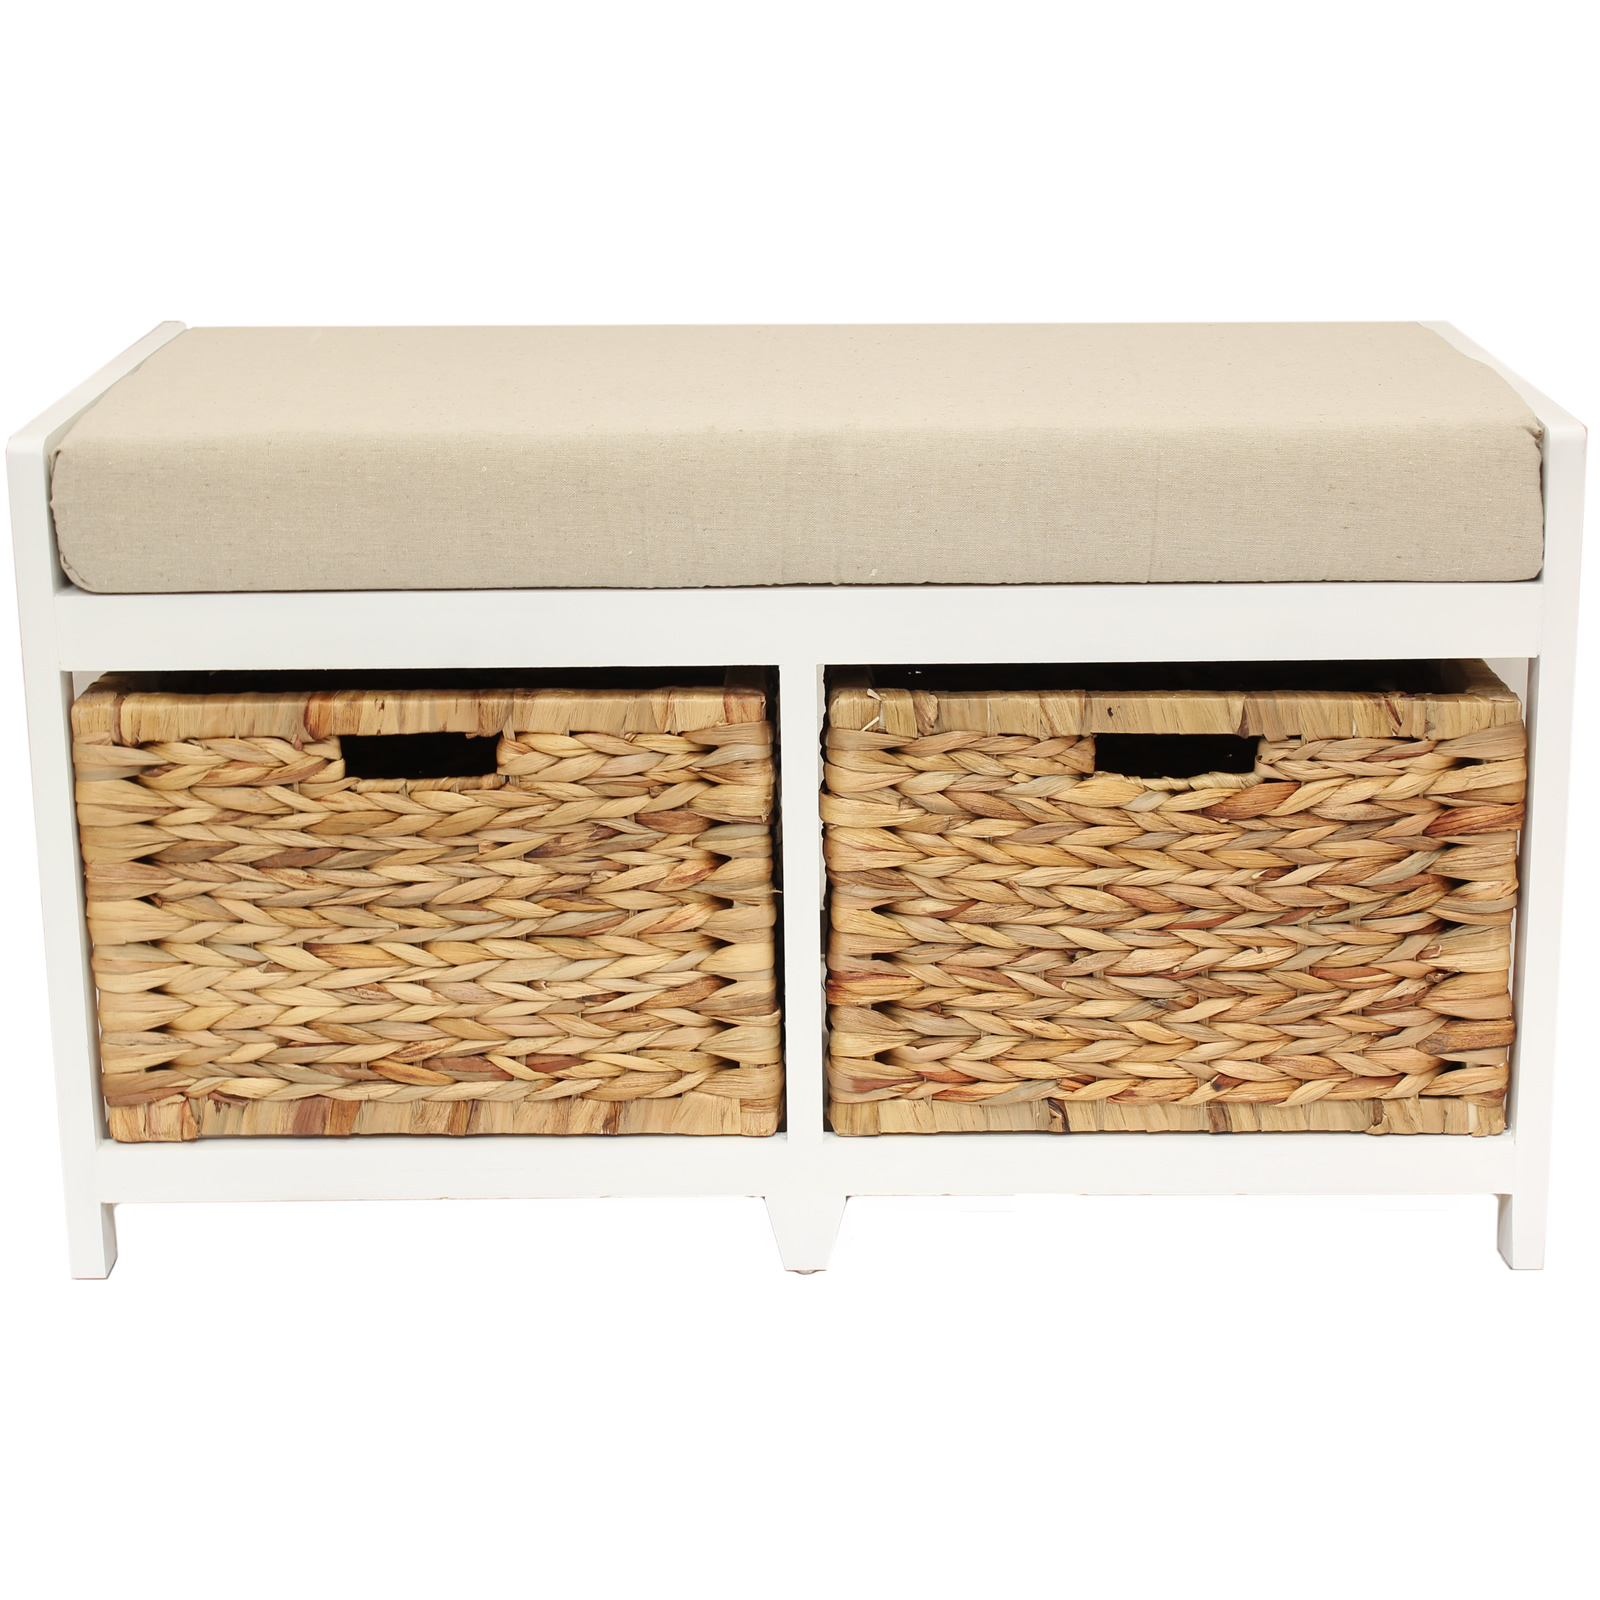 Home hallway bathroom bench seat with seagrass wicker storage baskets cushion ebay Storage bench cushion